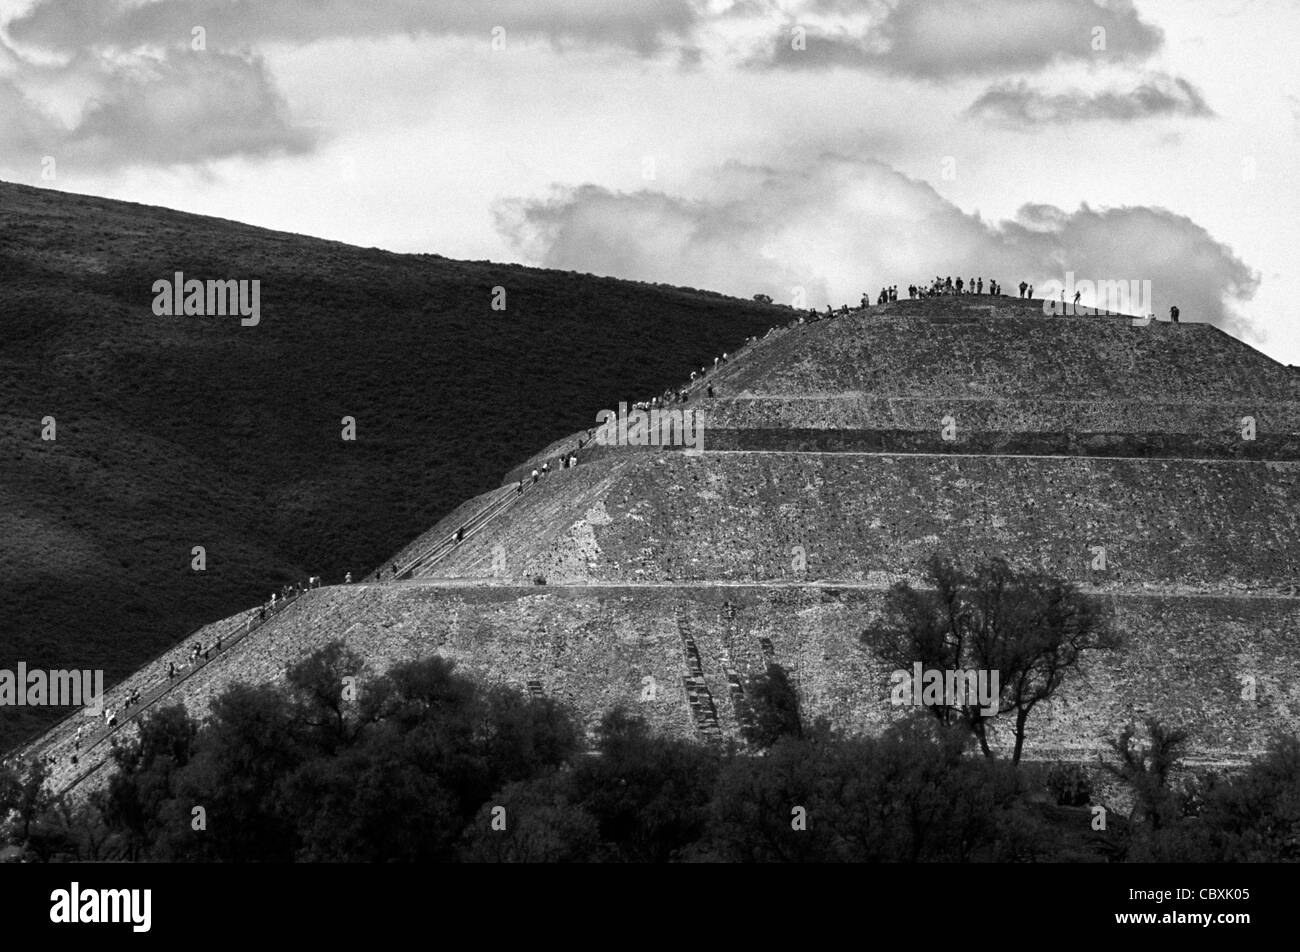 People climbing the Pyramid of the Sun, Teotihuacan, Mexico - Stock Image